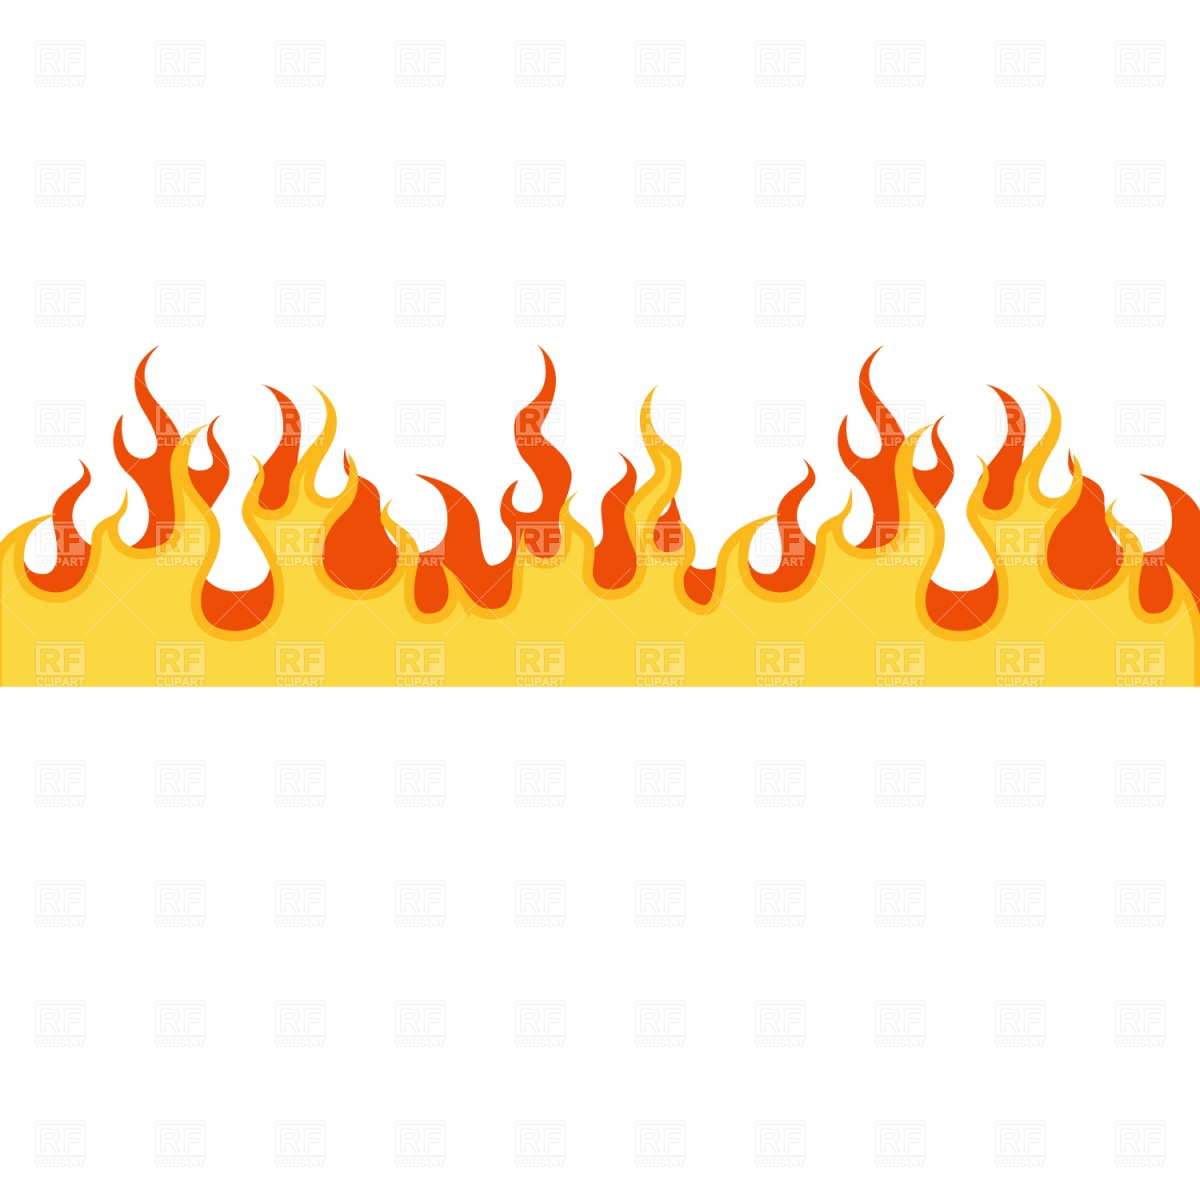 Borders And Frames Flame Frame Download -Borders And Frames Flame Frame Download Royalty Free Vector Clipart-0